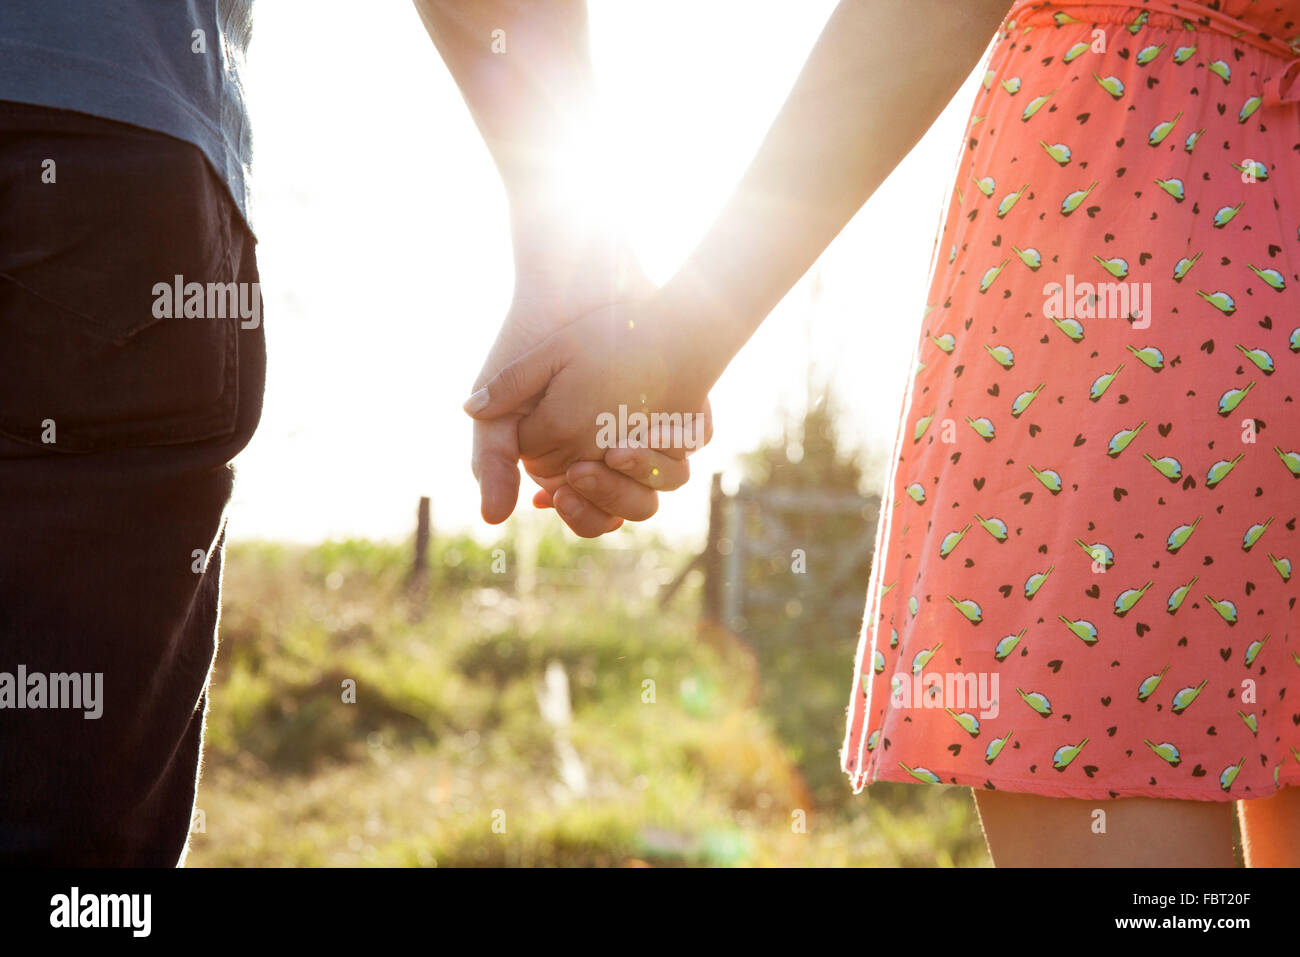 Couple Holding Hands, close-up Photo Stock